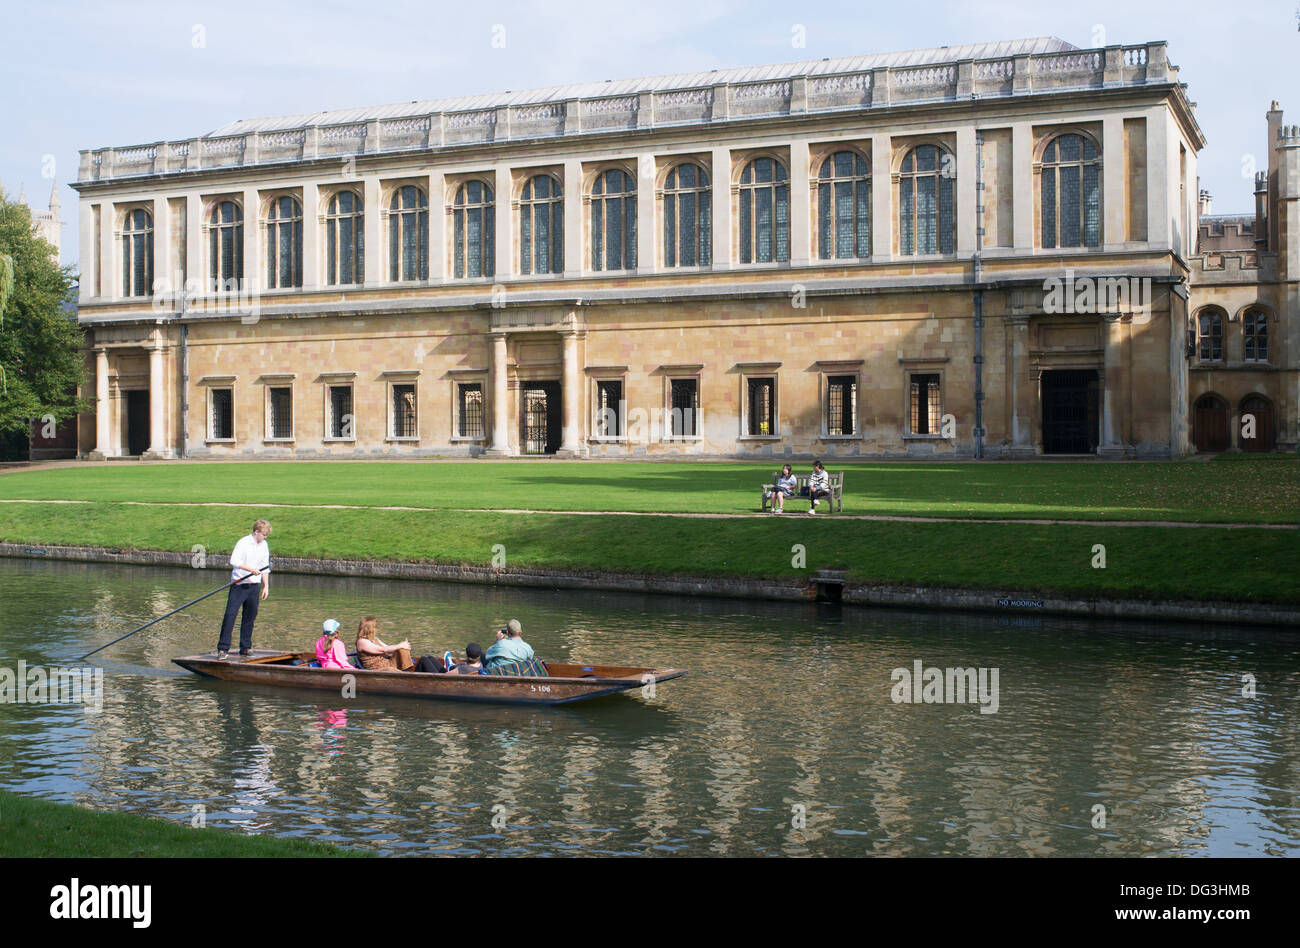 Punt with tourists passing the Wren library of Trinity College University of Cambridge, England, UK - Stock Image